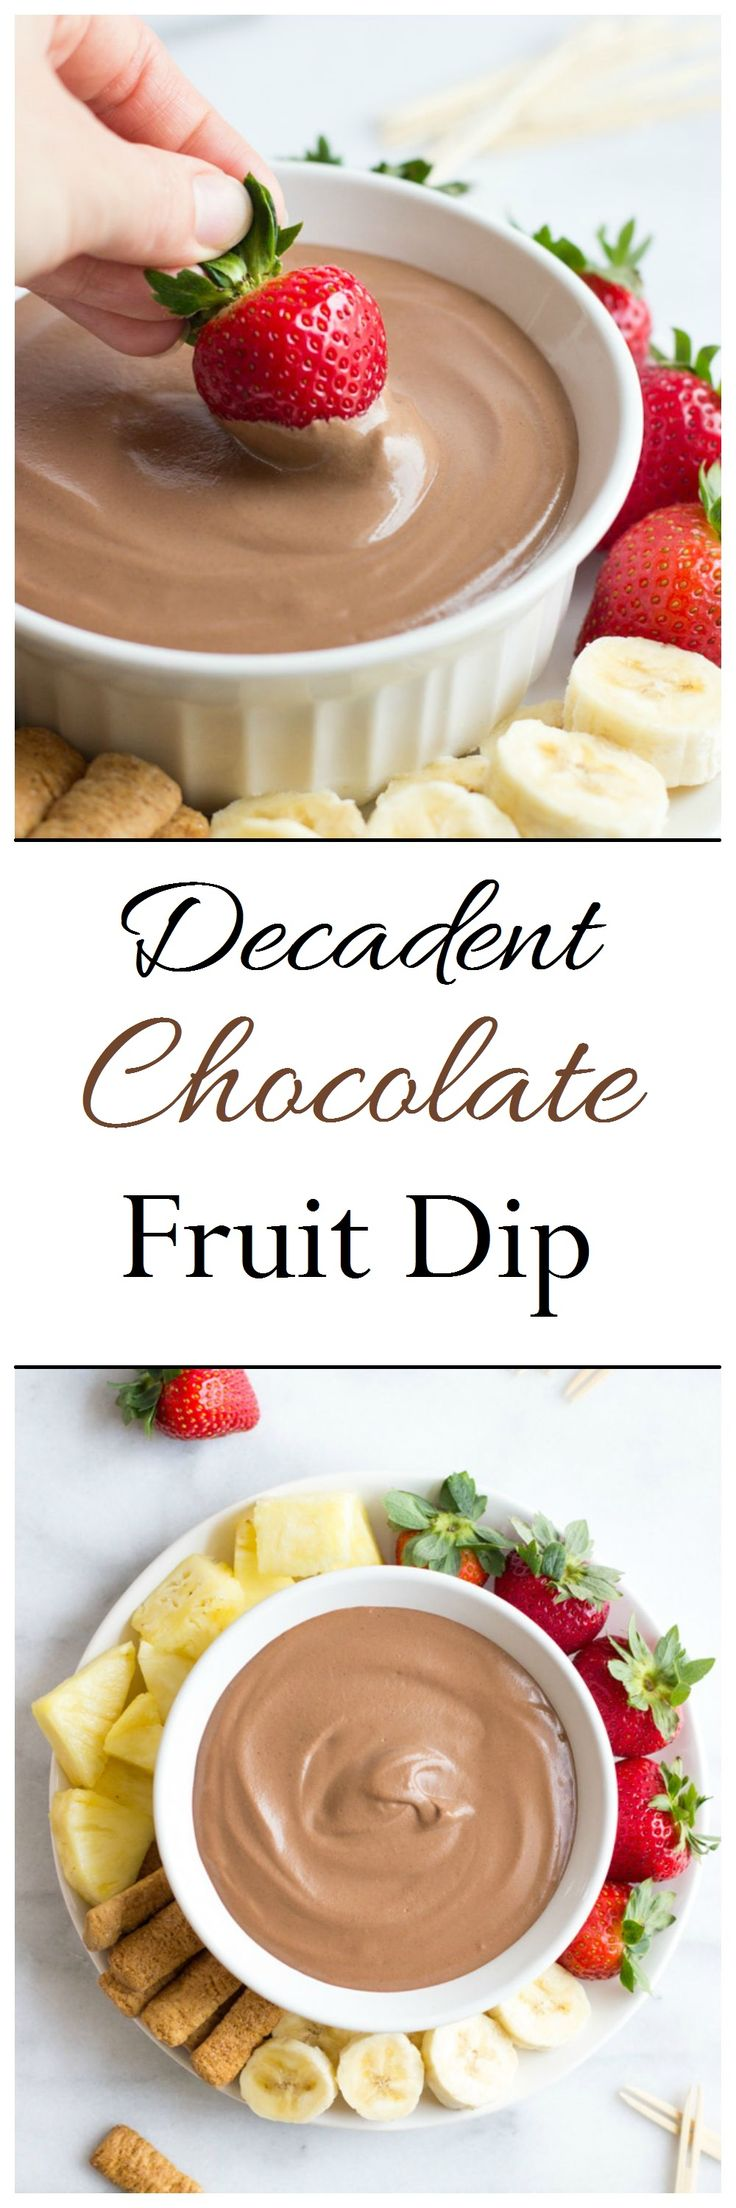 This recipe makes the lightest and silkiest chocolate fruit dip you can find! You won't believe it's made without dairy or refined sugar! (vegan + gluten-free) (Cheese Making Dairy Free)